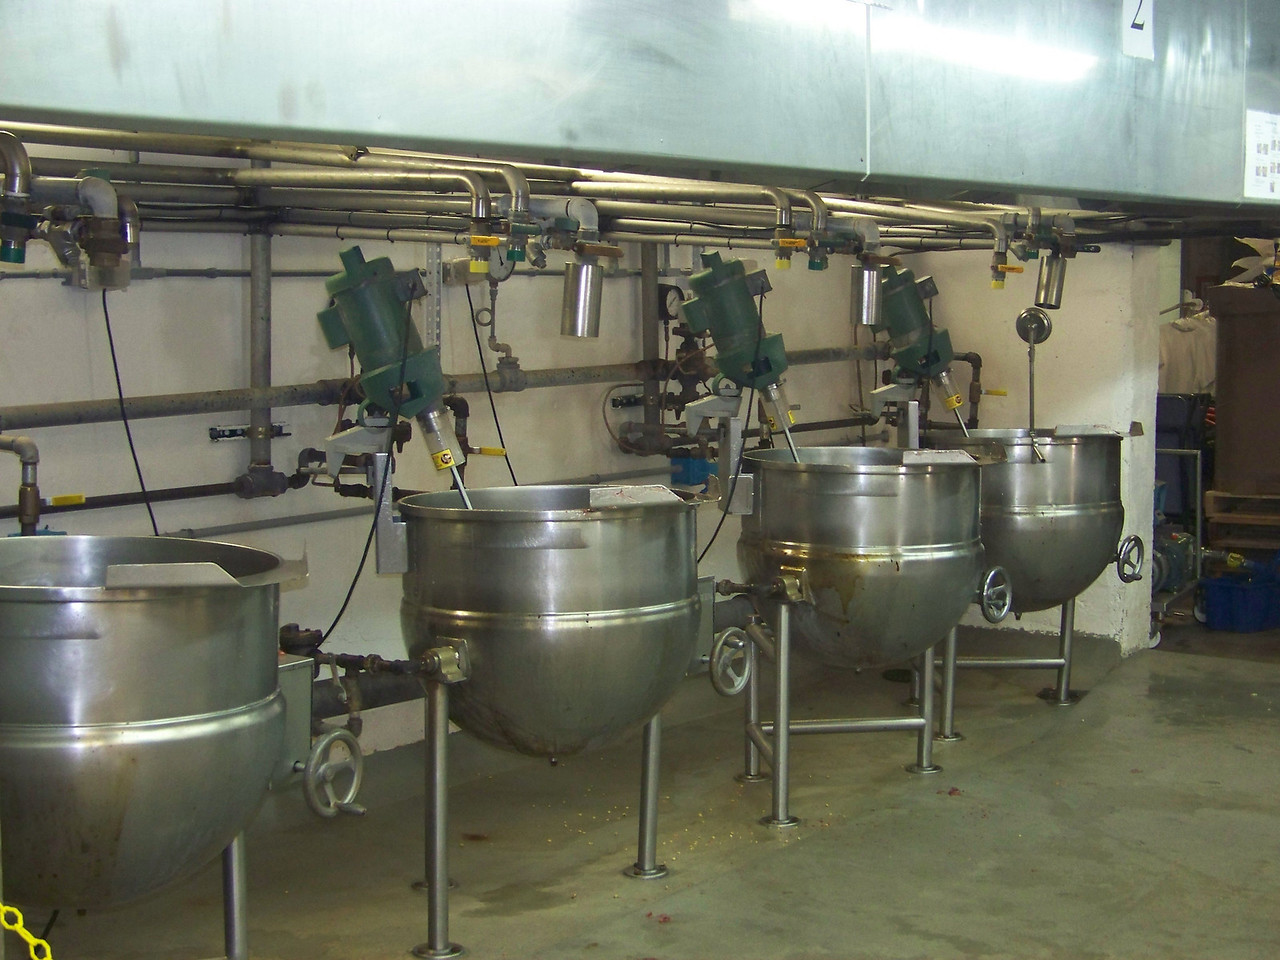 Here's the vats where they puree and cook the fruit, and mix in the nuts and other ingredients.<br /> [Cashmere, WA - Aplets & Cotlets factory tour]